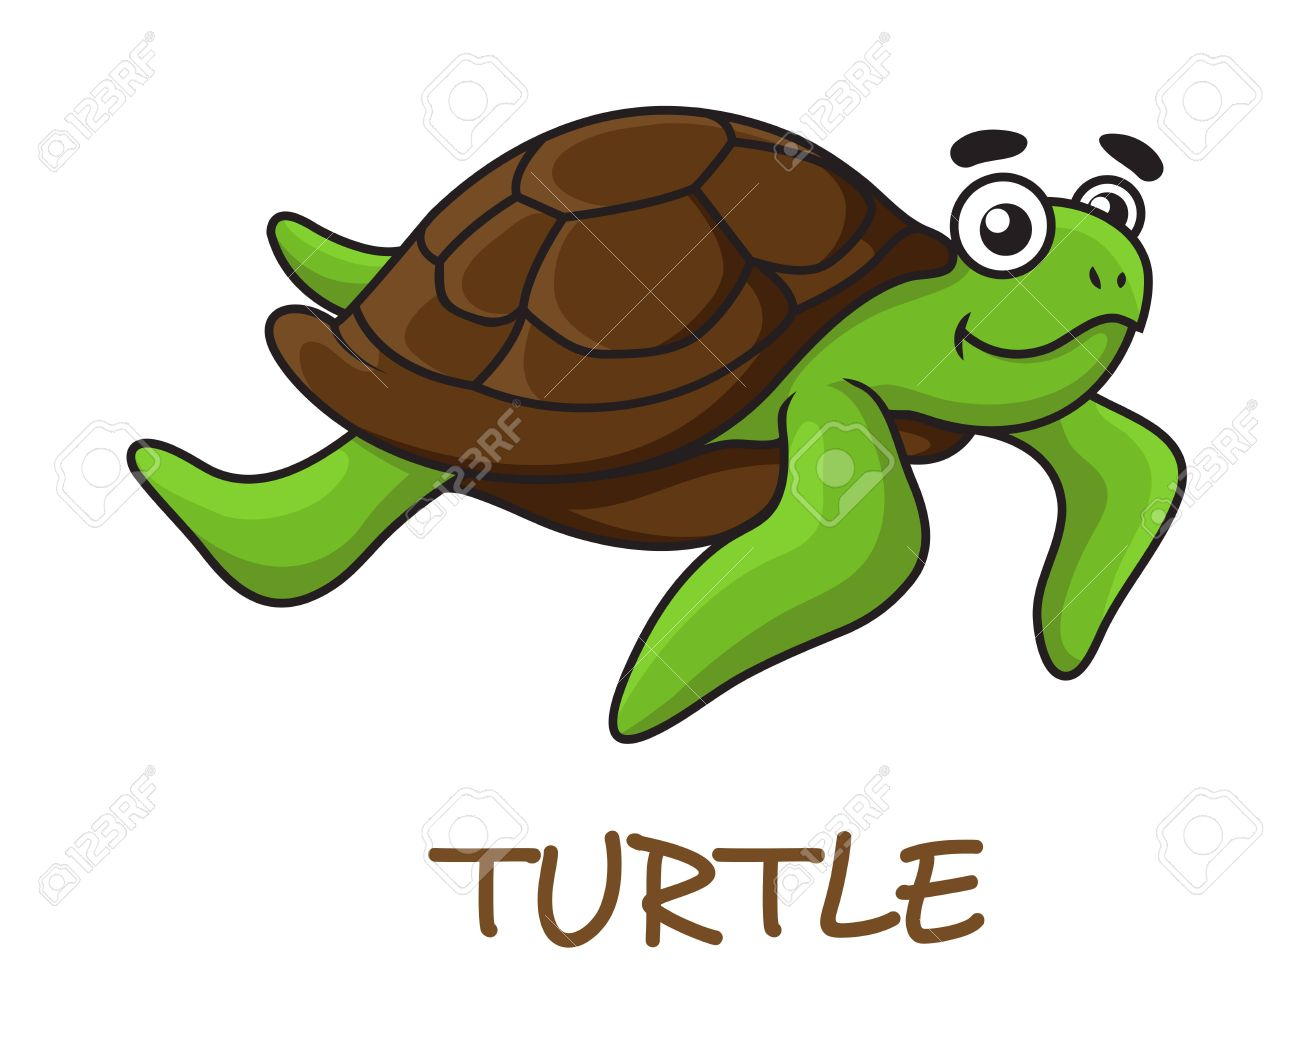 Cute Happy Green Turtle With Brown Shell In Cartoon Style Isolated